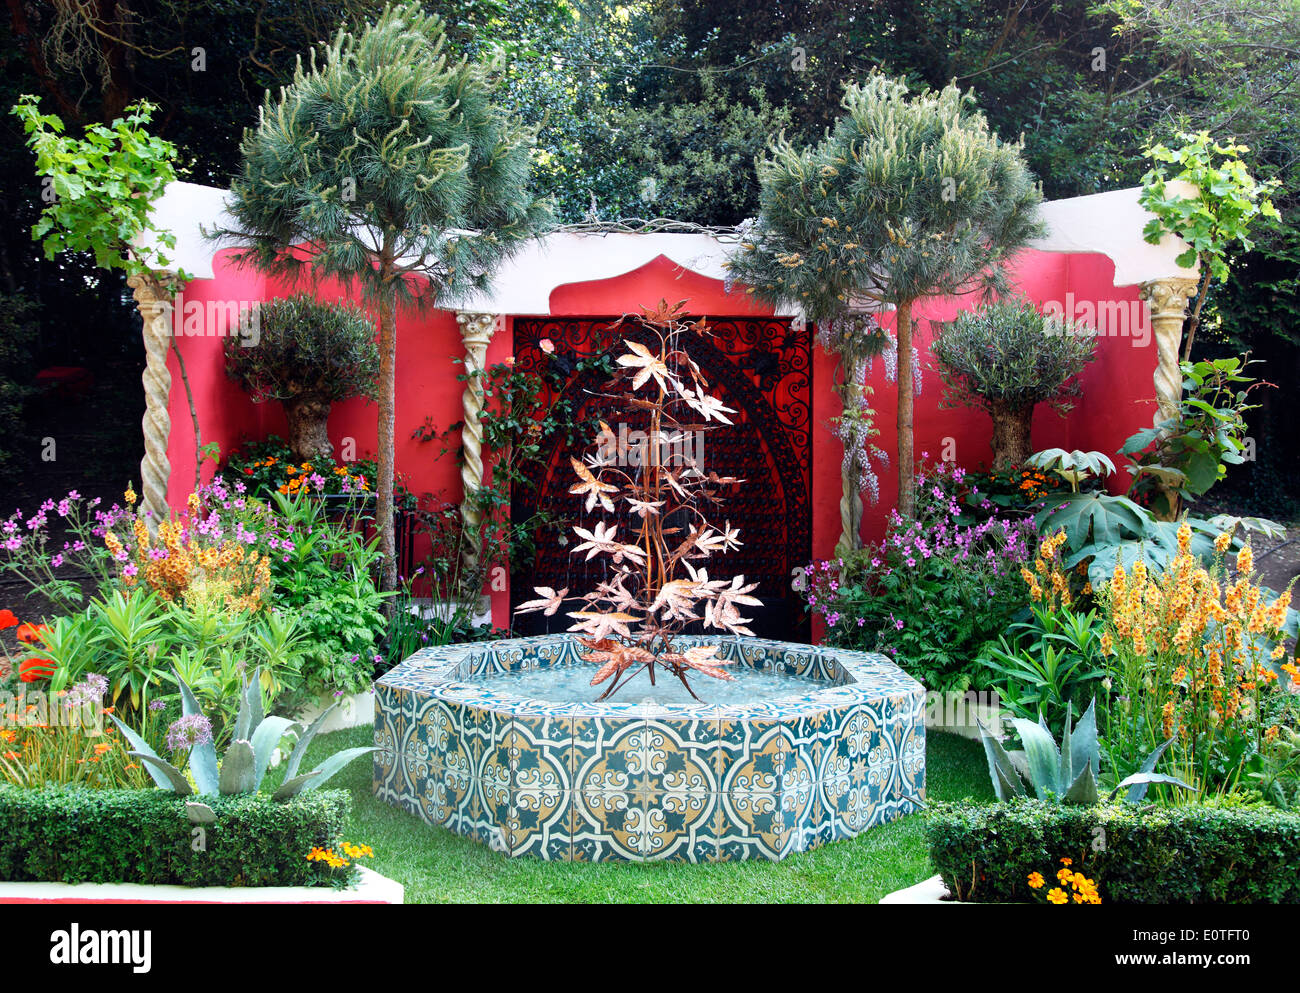 75 Years Of The Roof Gardens Of Kensington, An Artisan Garden Designed By  David Lewis At The RHS Chelsea Flower Show 2014